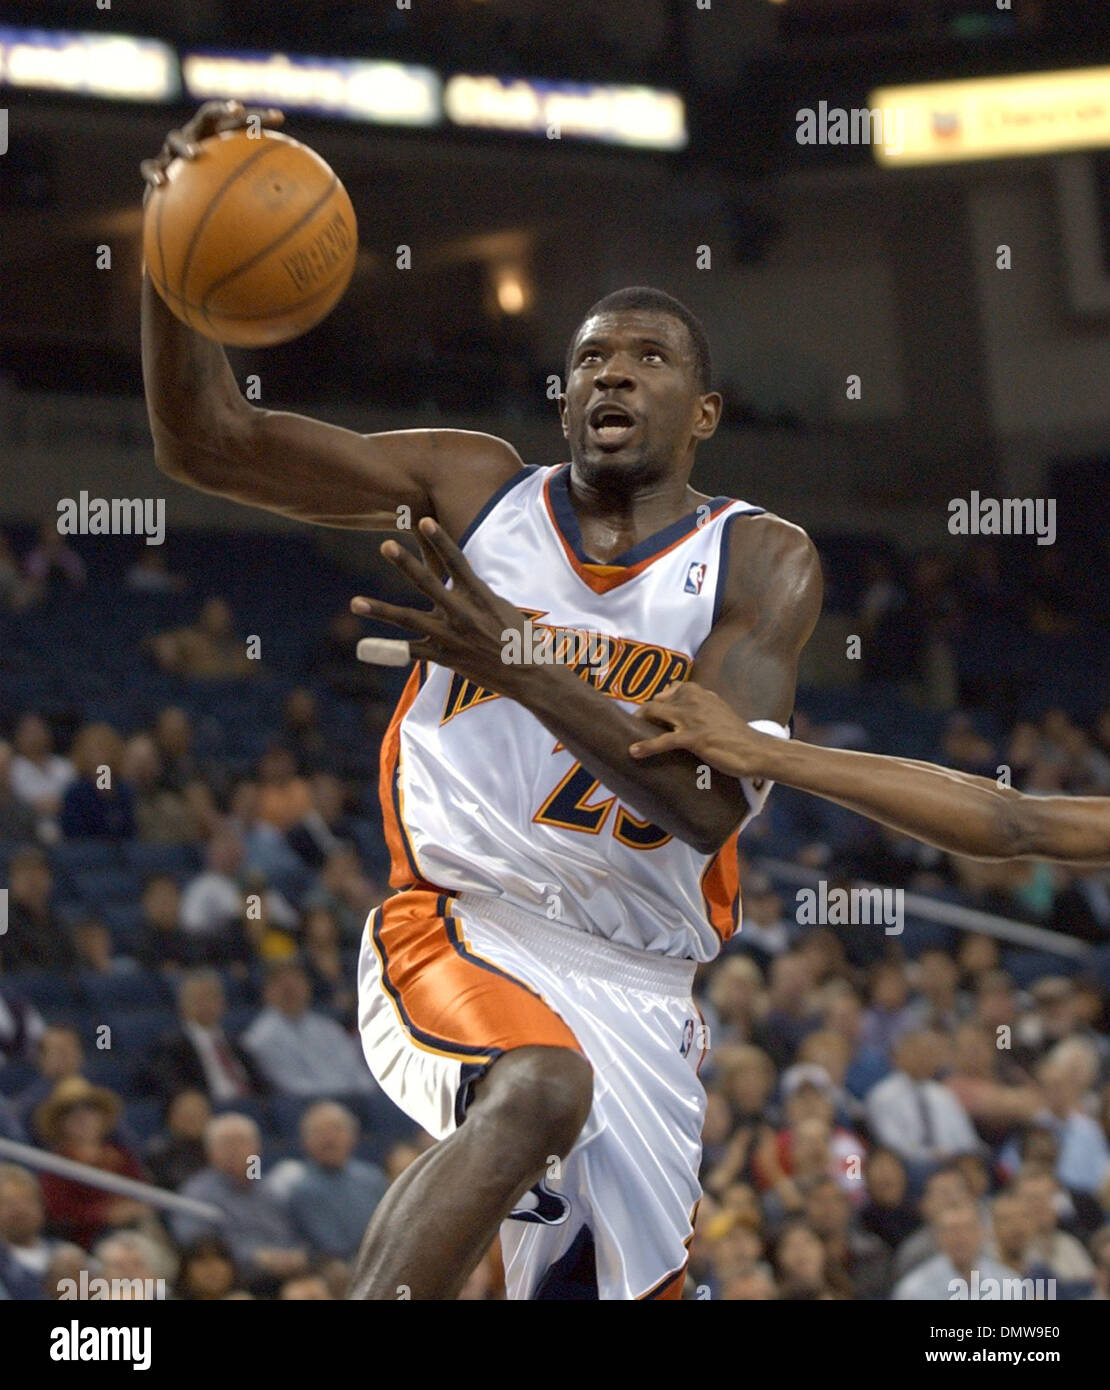 Dec 03, 2002; Oakland, CA, USA; Golden State Warriors Jason Richardson drives to the basket past a Denver Nuggets player in the first half of game played at The Arena in Oakland, Calif. on Tuesday December 03, 2002. Richardson scored 10 points in the first half. - Stock Image